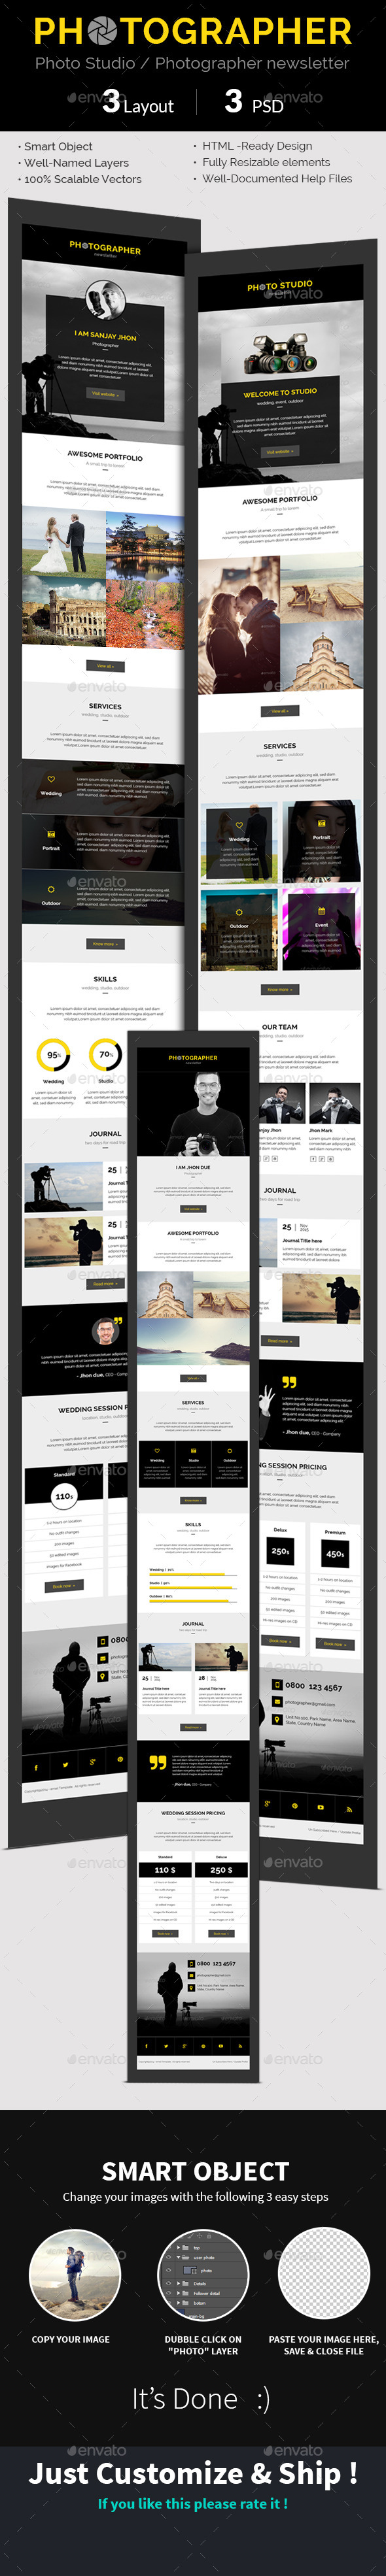 Photographer Photo Studio e-newsletter PSD Templ